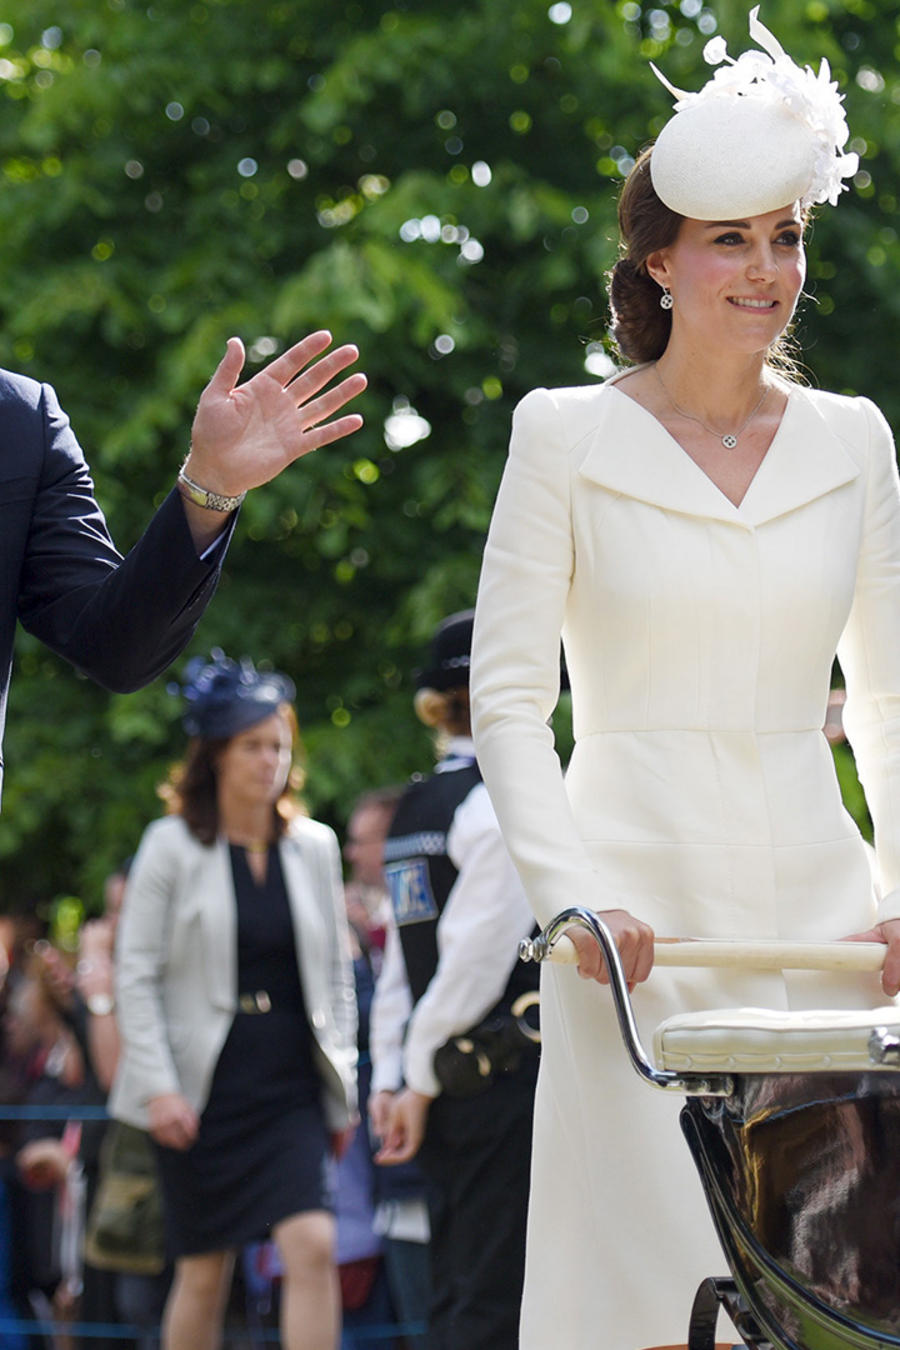 Los duques de Cambridge William y Kate, con su hijo George tras el bautizo de su bebita Carlota.